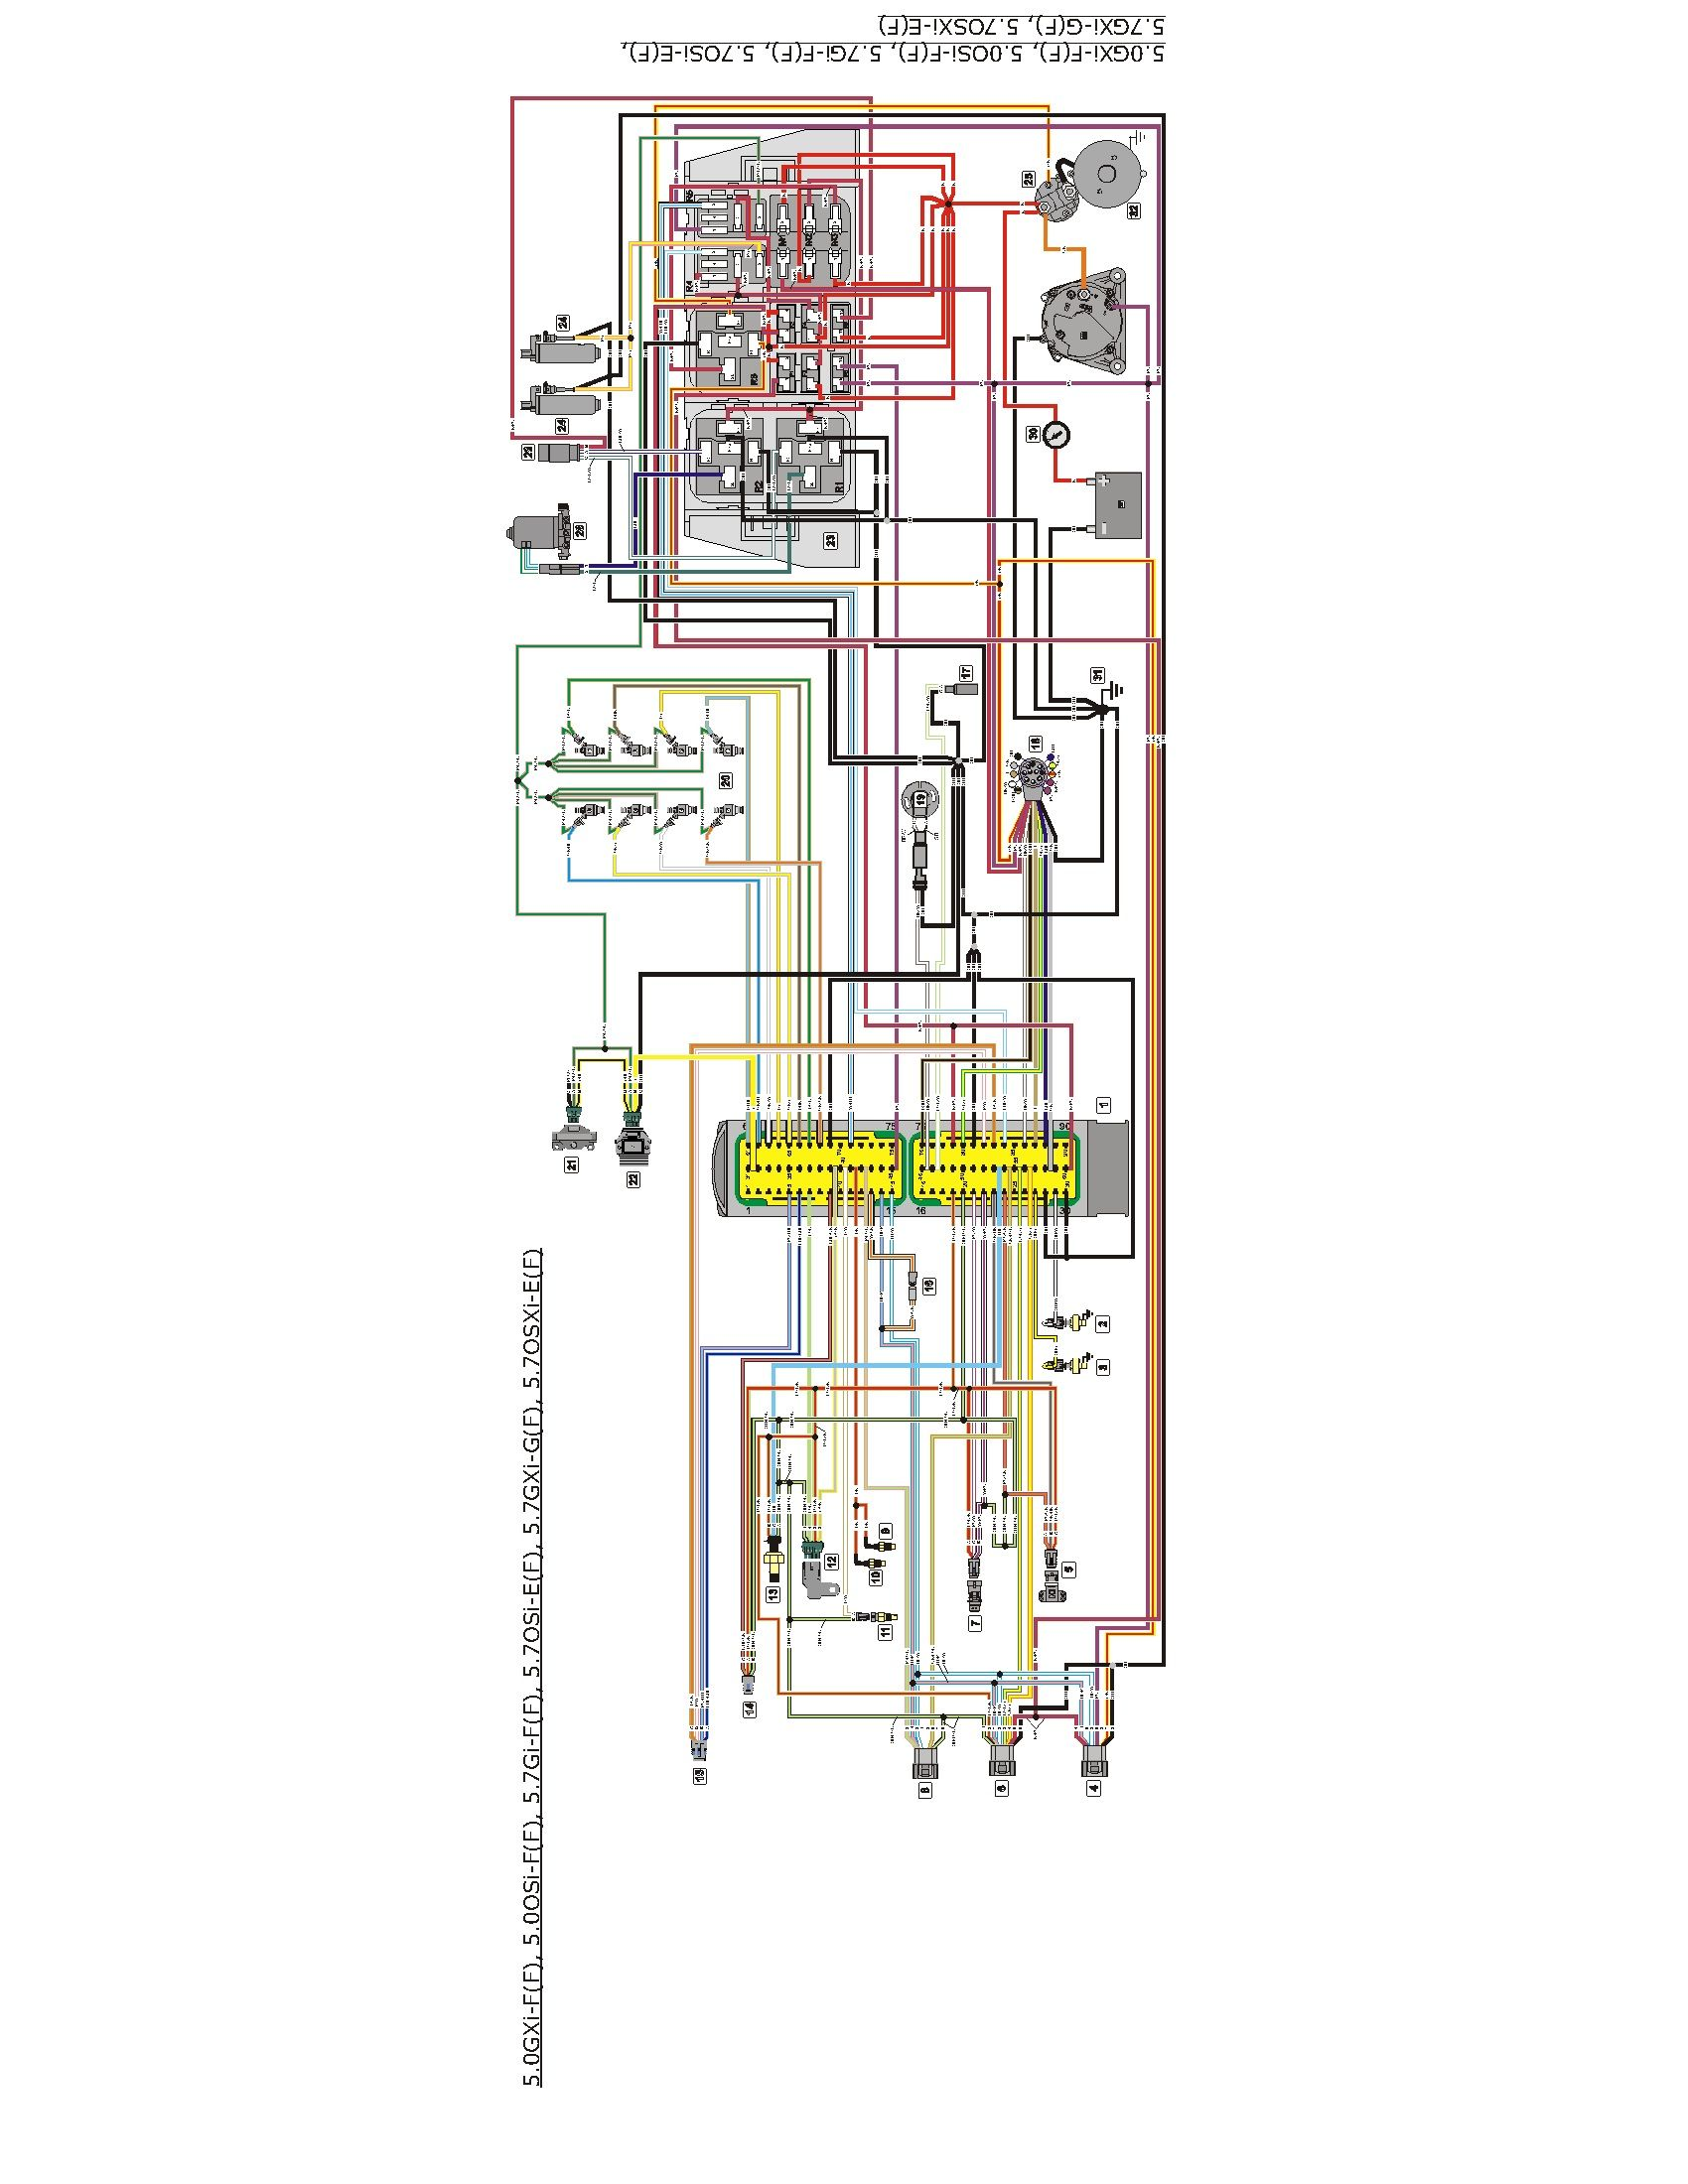 38e0106861e0fe47e508530985b32839 volvo penta 5 7 engine wiring diagram yate pinterest volvo Volvo Penta Logo at bayanpartner.co